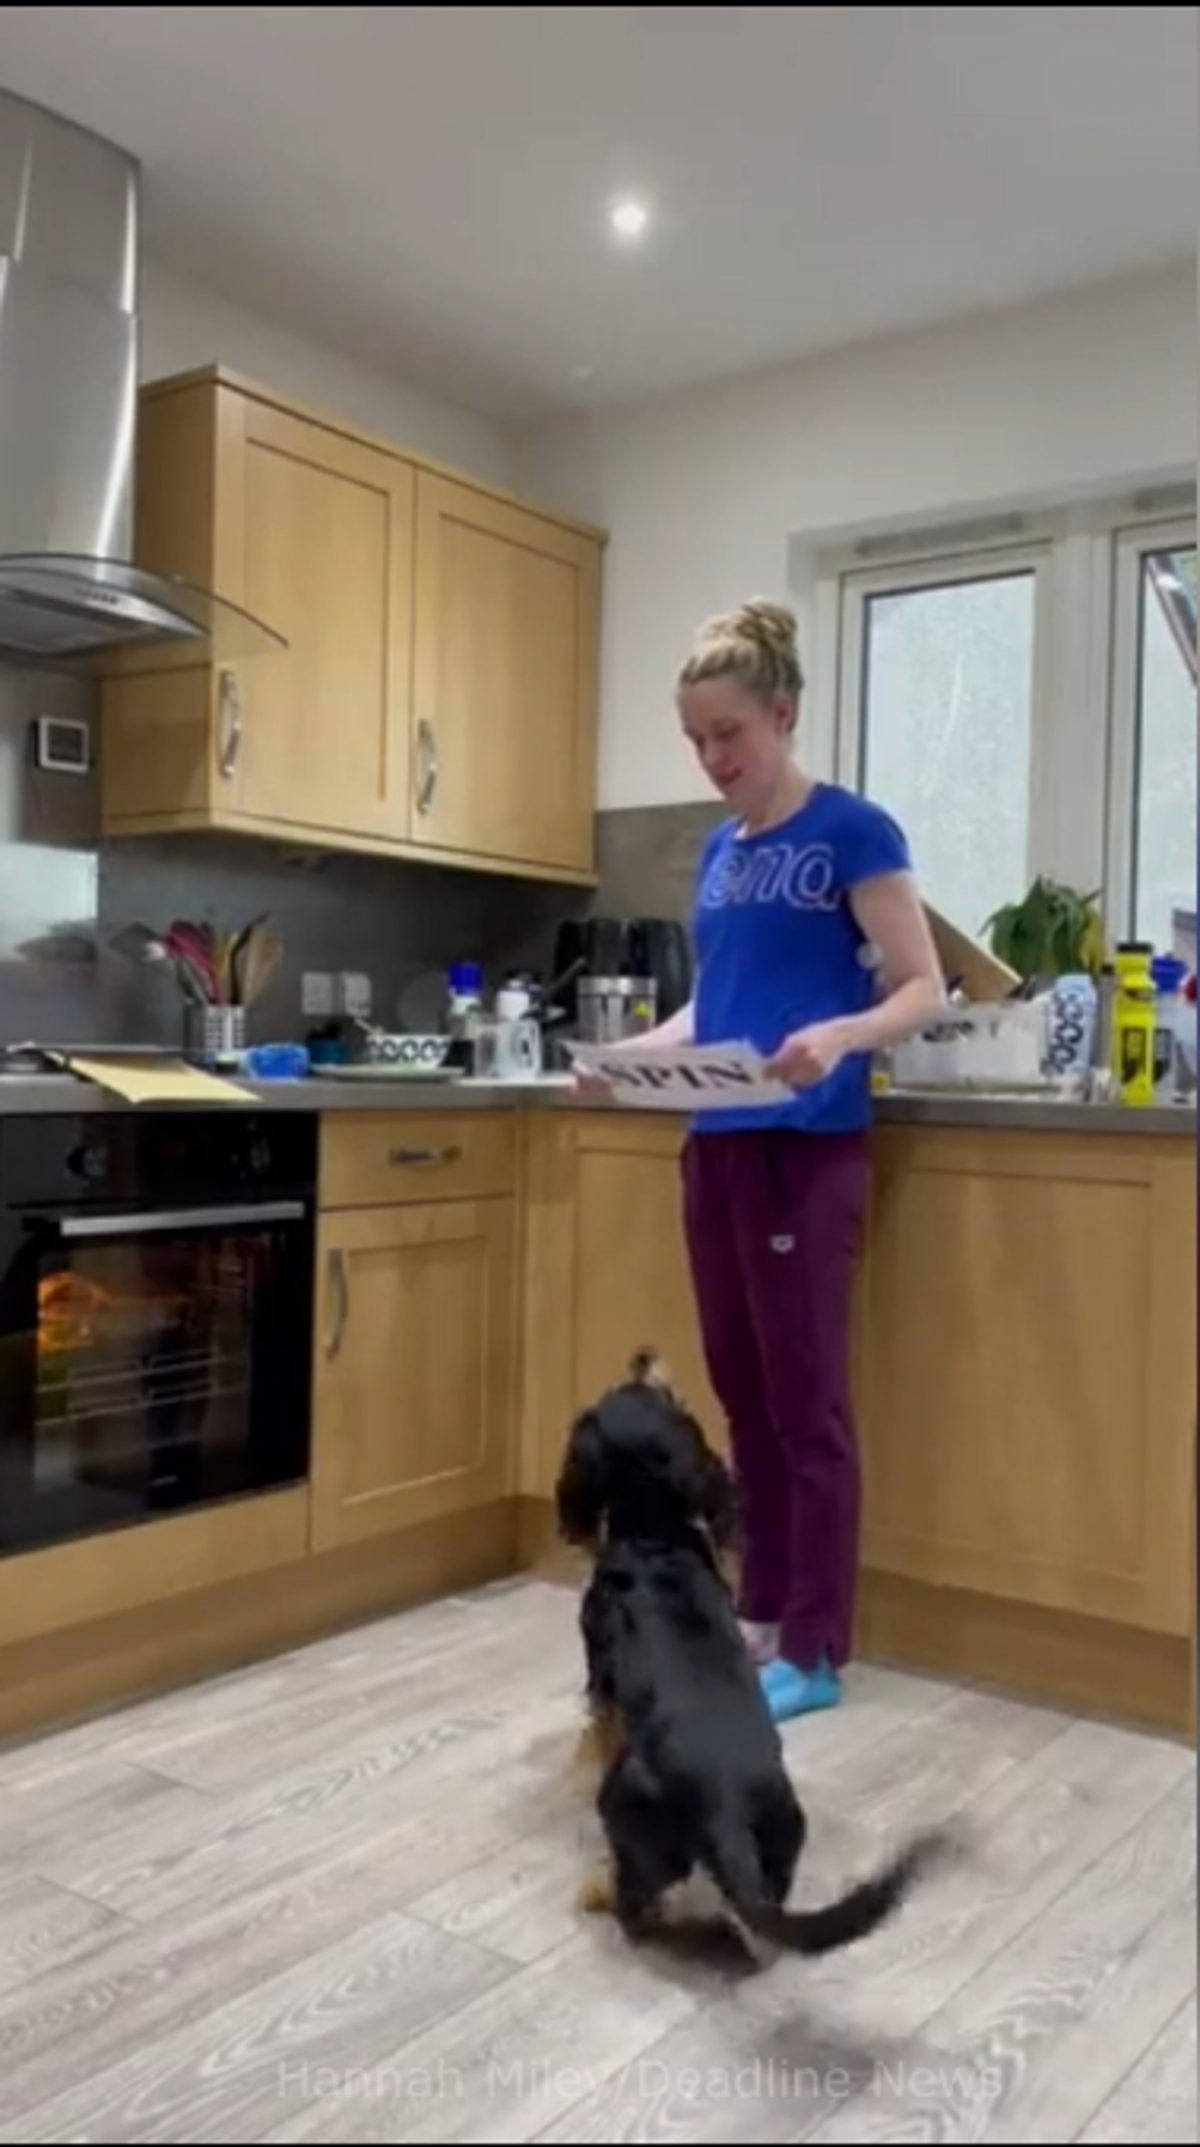 Hannah Miley teaching her dog Poppy - sat in front of her - how to read signs.